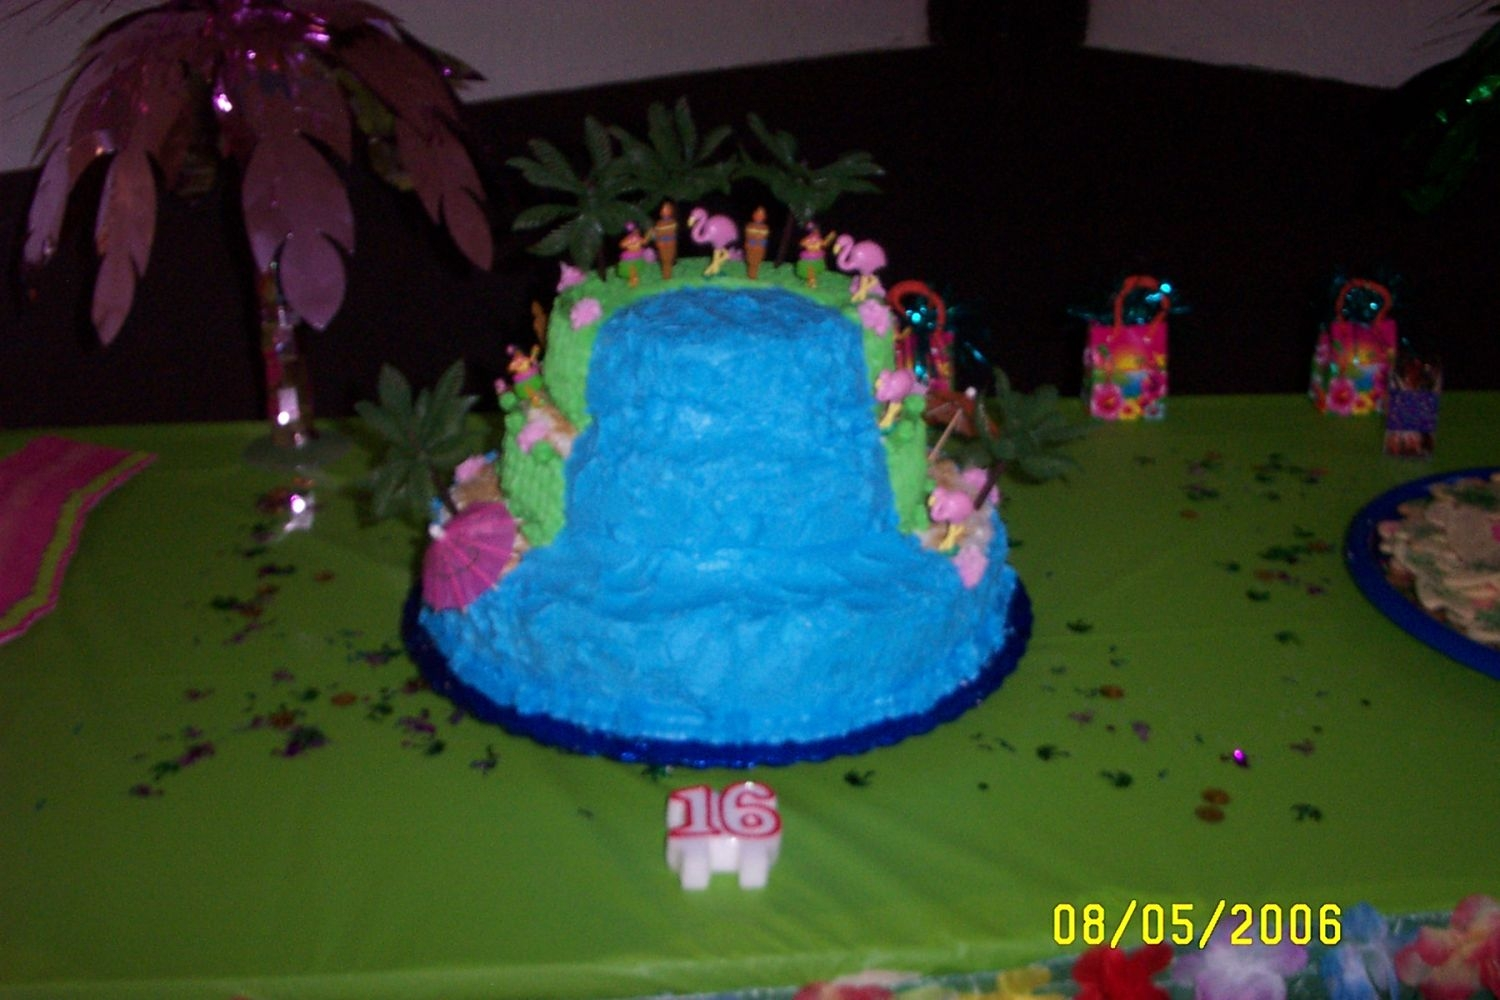 Stacked Waterfall For Luau  This is my first attempt at a stacked cake. This was for my daughter's 16th birthday party which was a luau theme. I am self taught up...